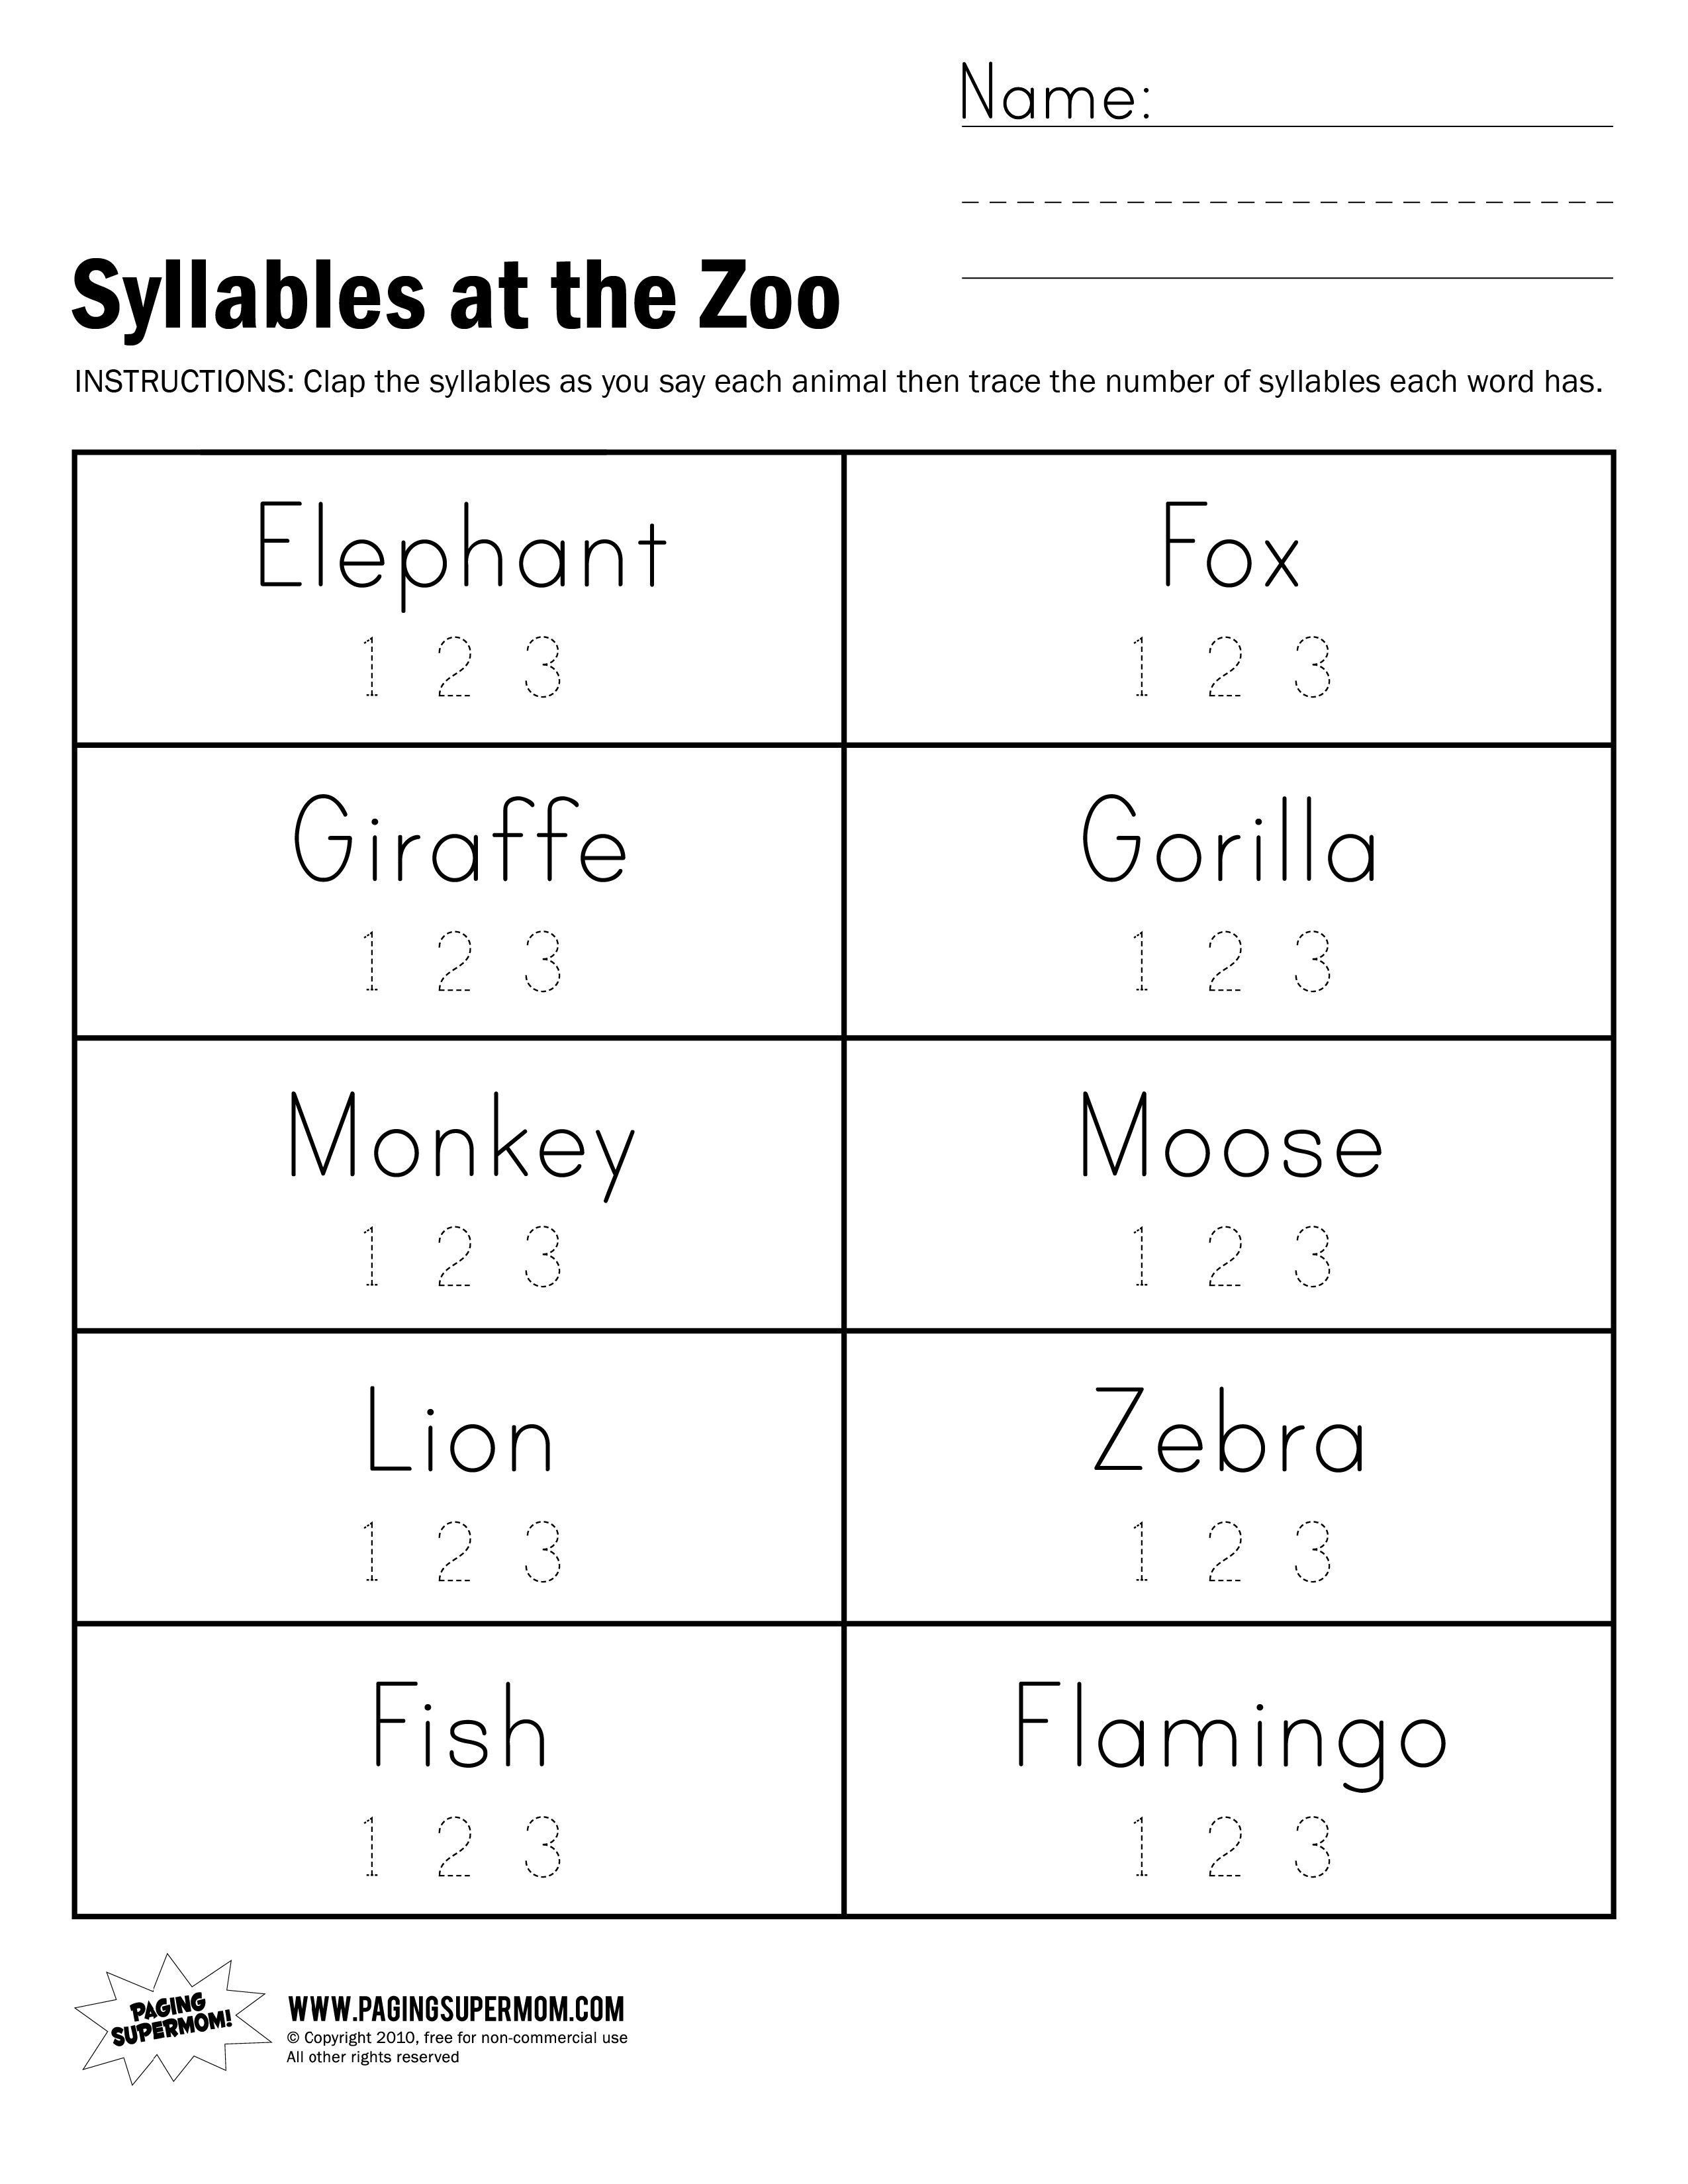 Syllables At The Zoo Worksheet - Free Printable Open And Closed Syllable Worksheets